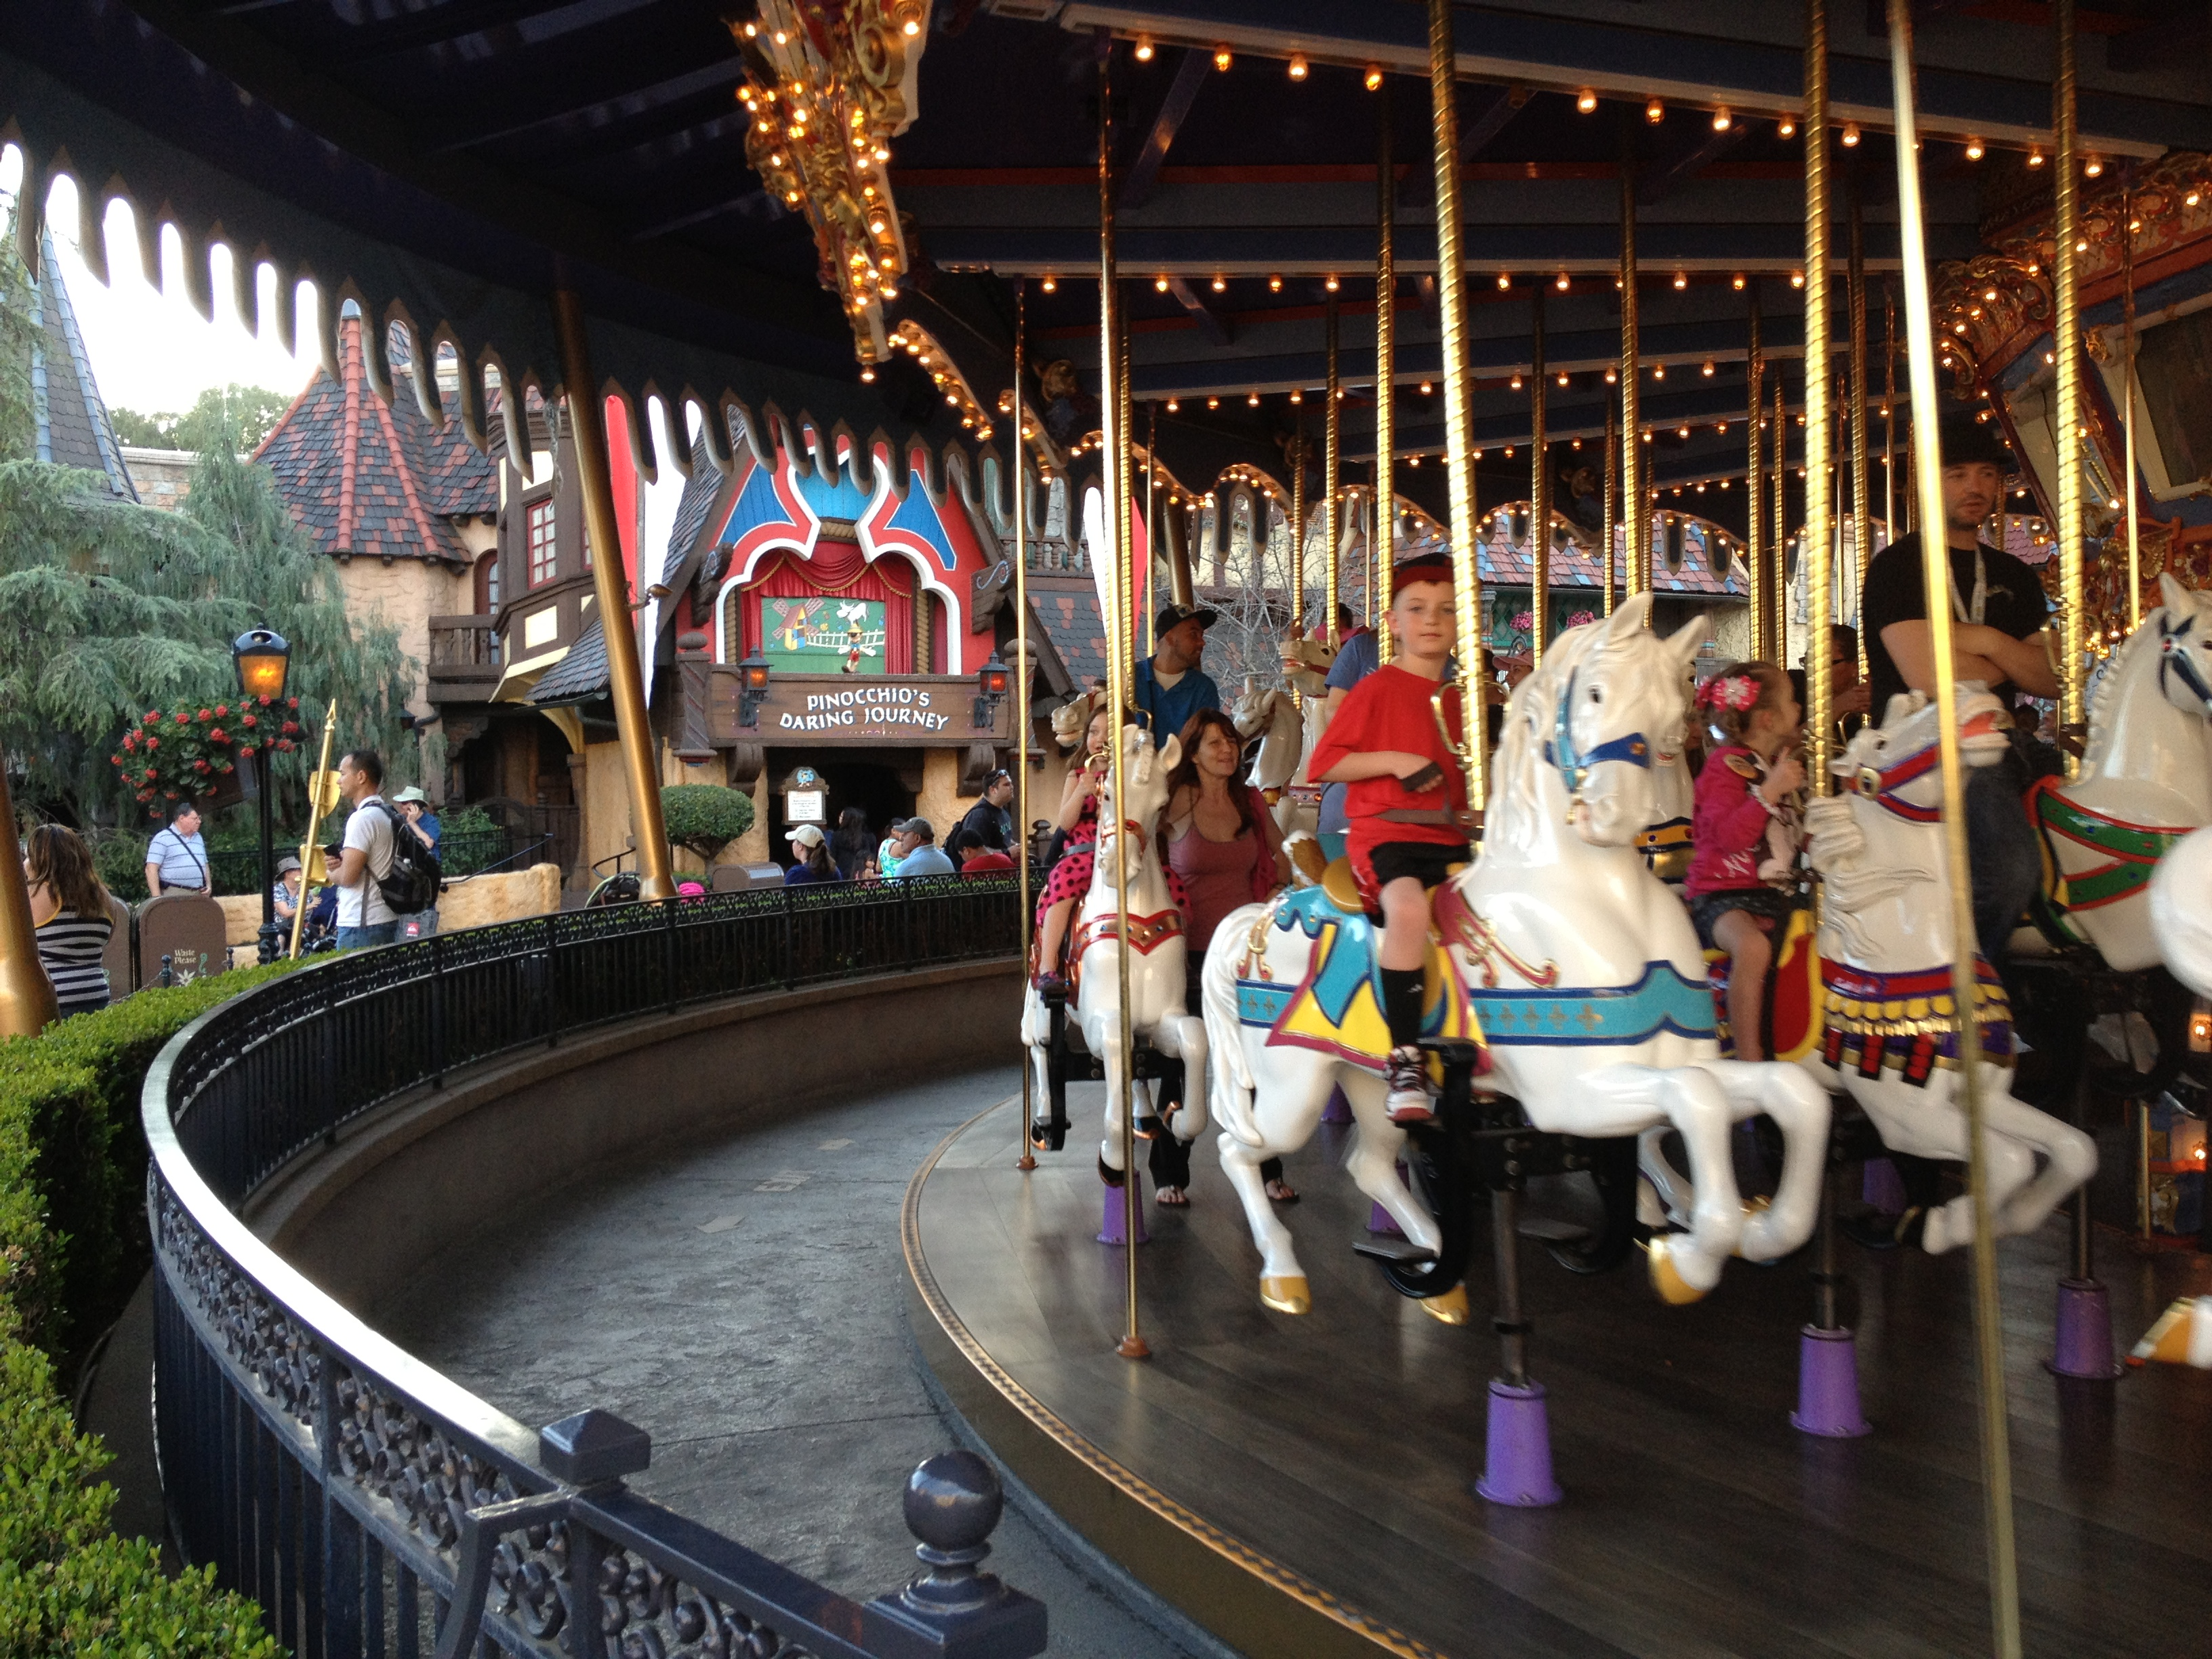 King Arthur's Carousal at Disneyland